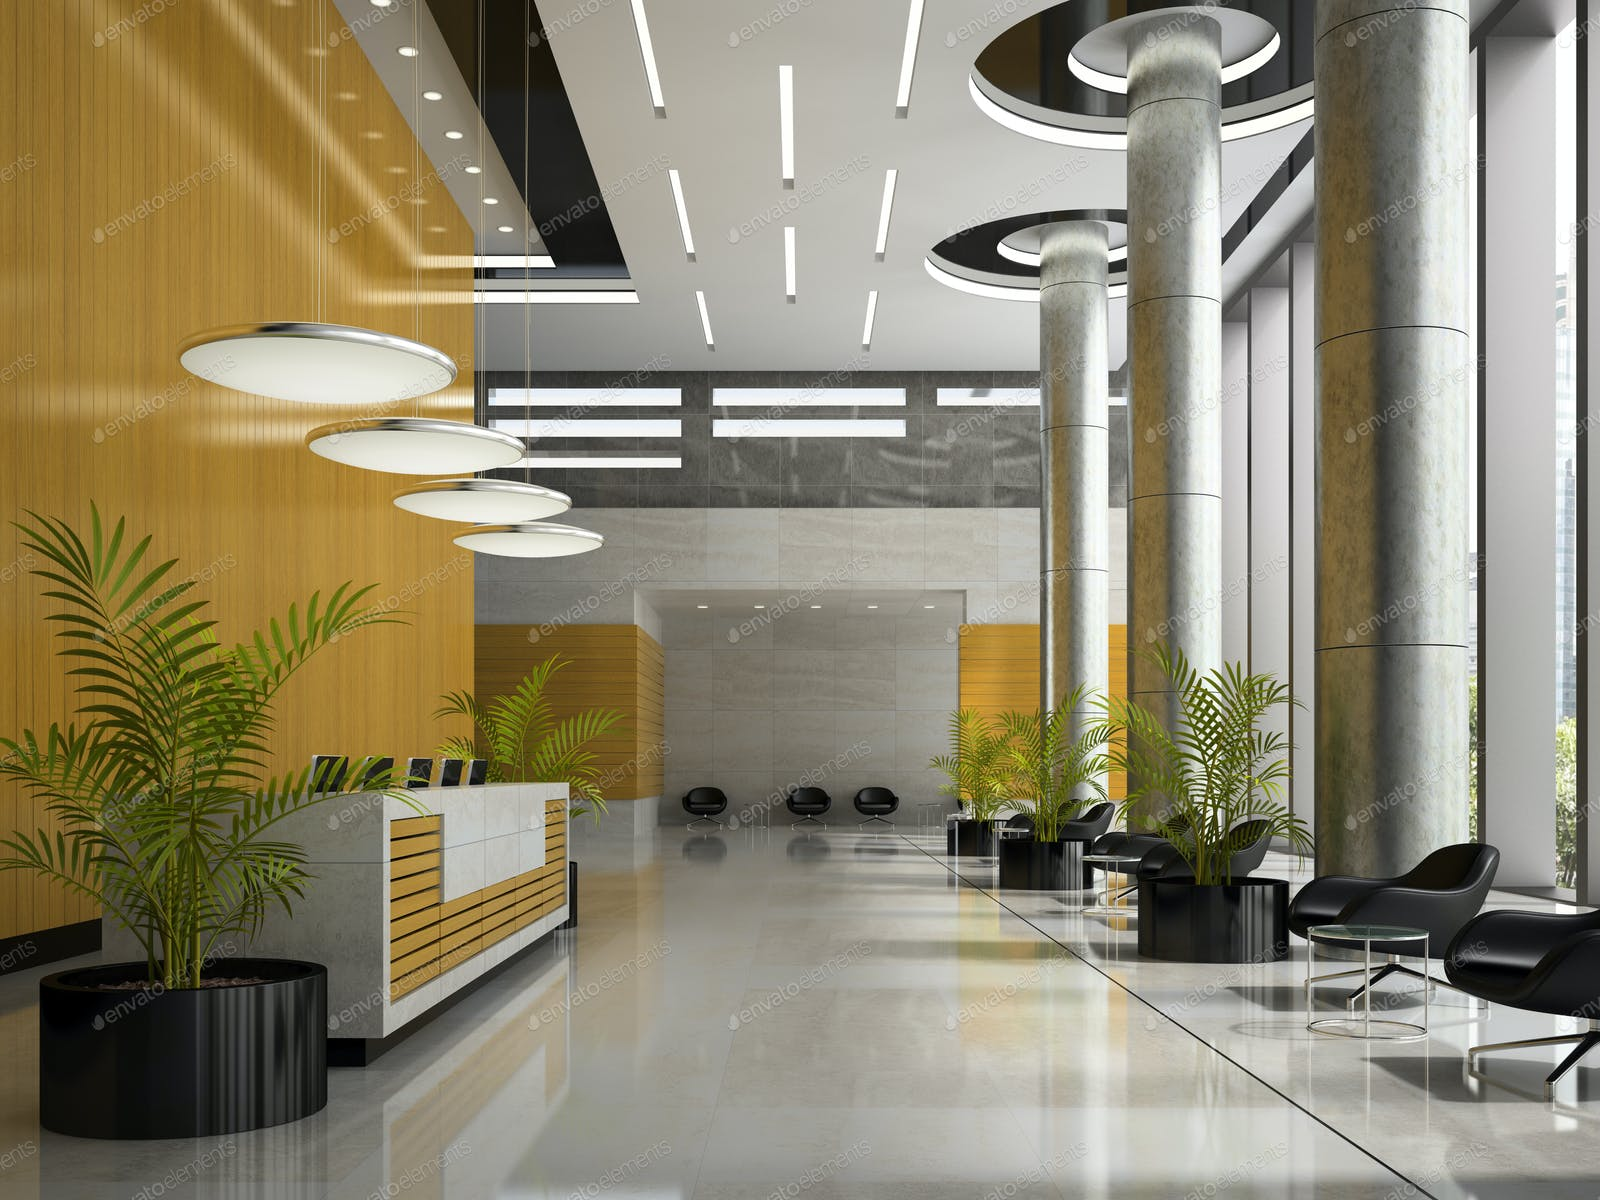 Interior Of A Hotel Reception 3d Illustration Photo By Hemul75 On Envato Elements